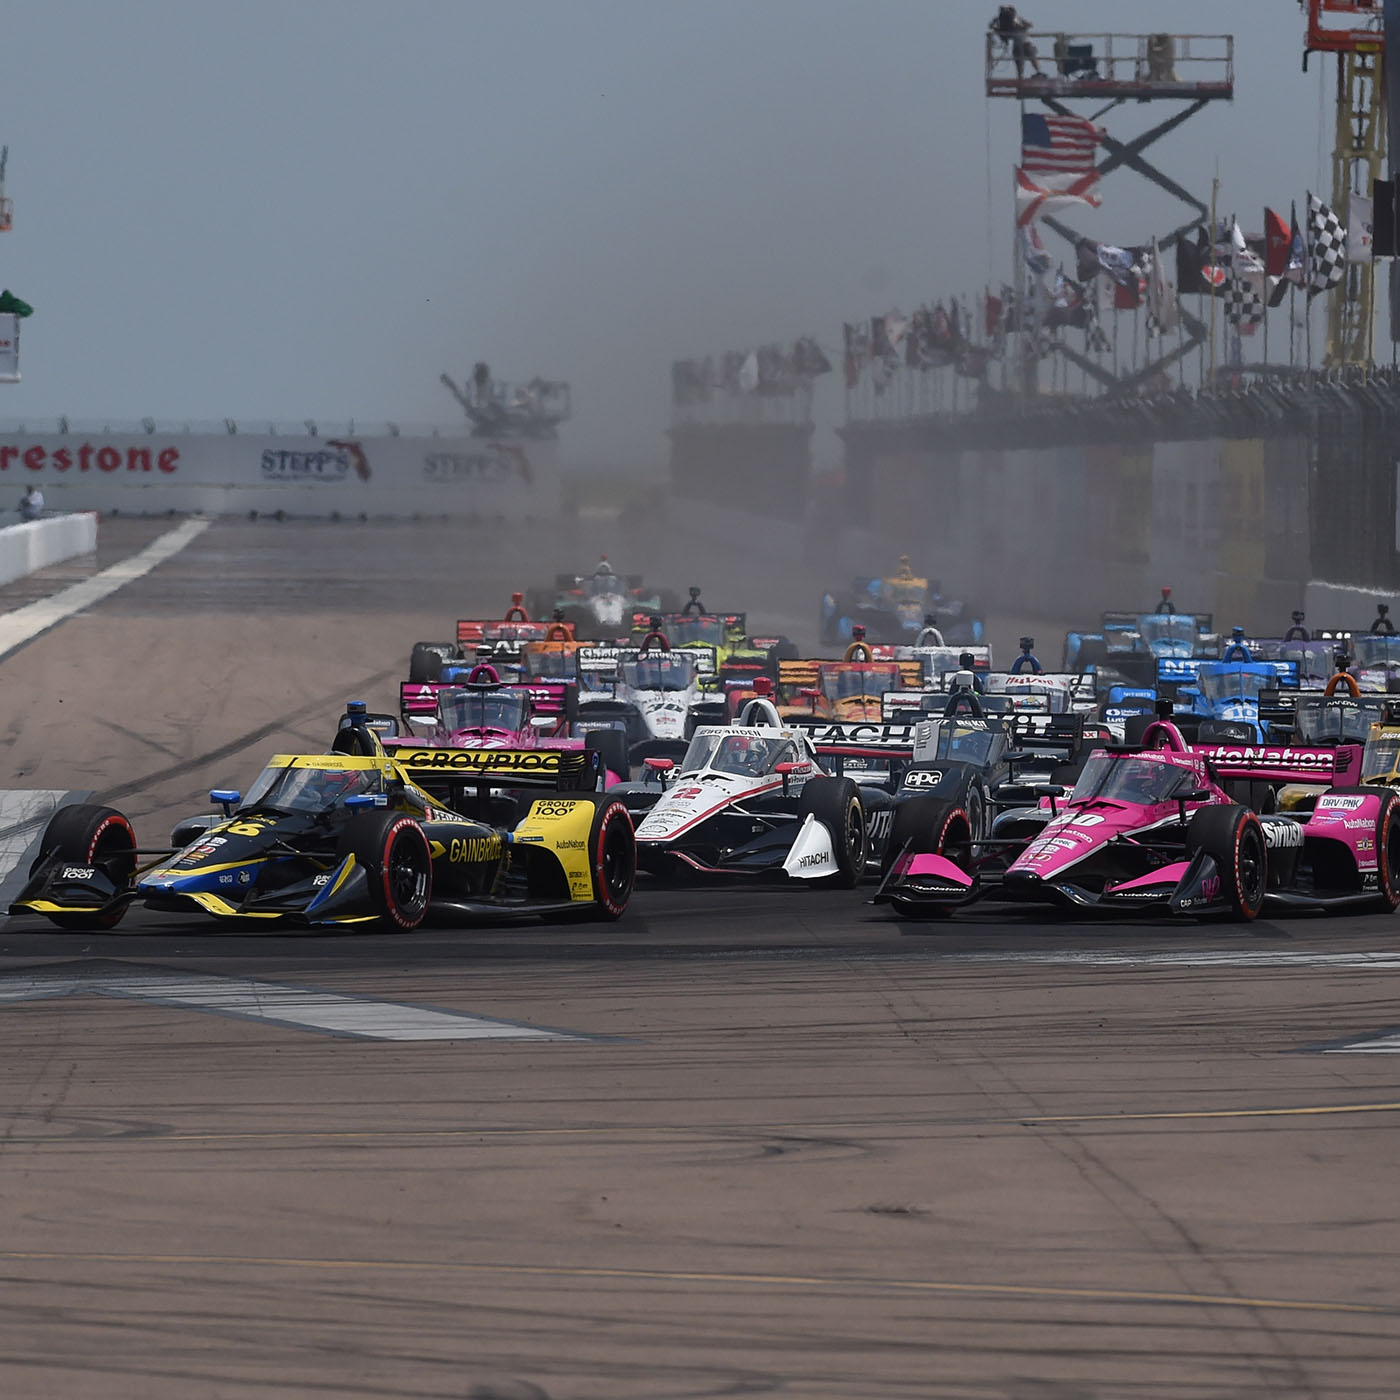 MP 1088: The Week In IndyCar, April 26, Listener Q&A